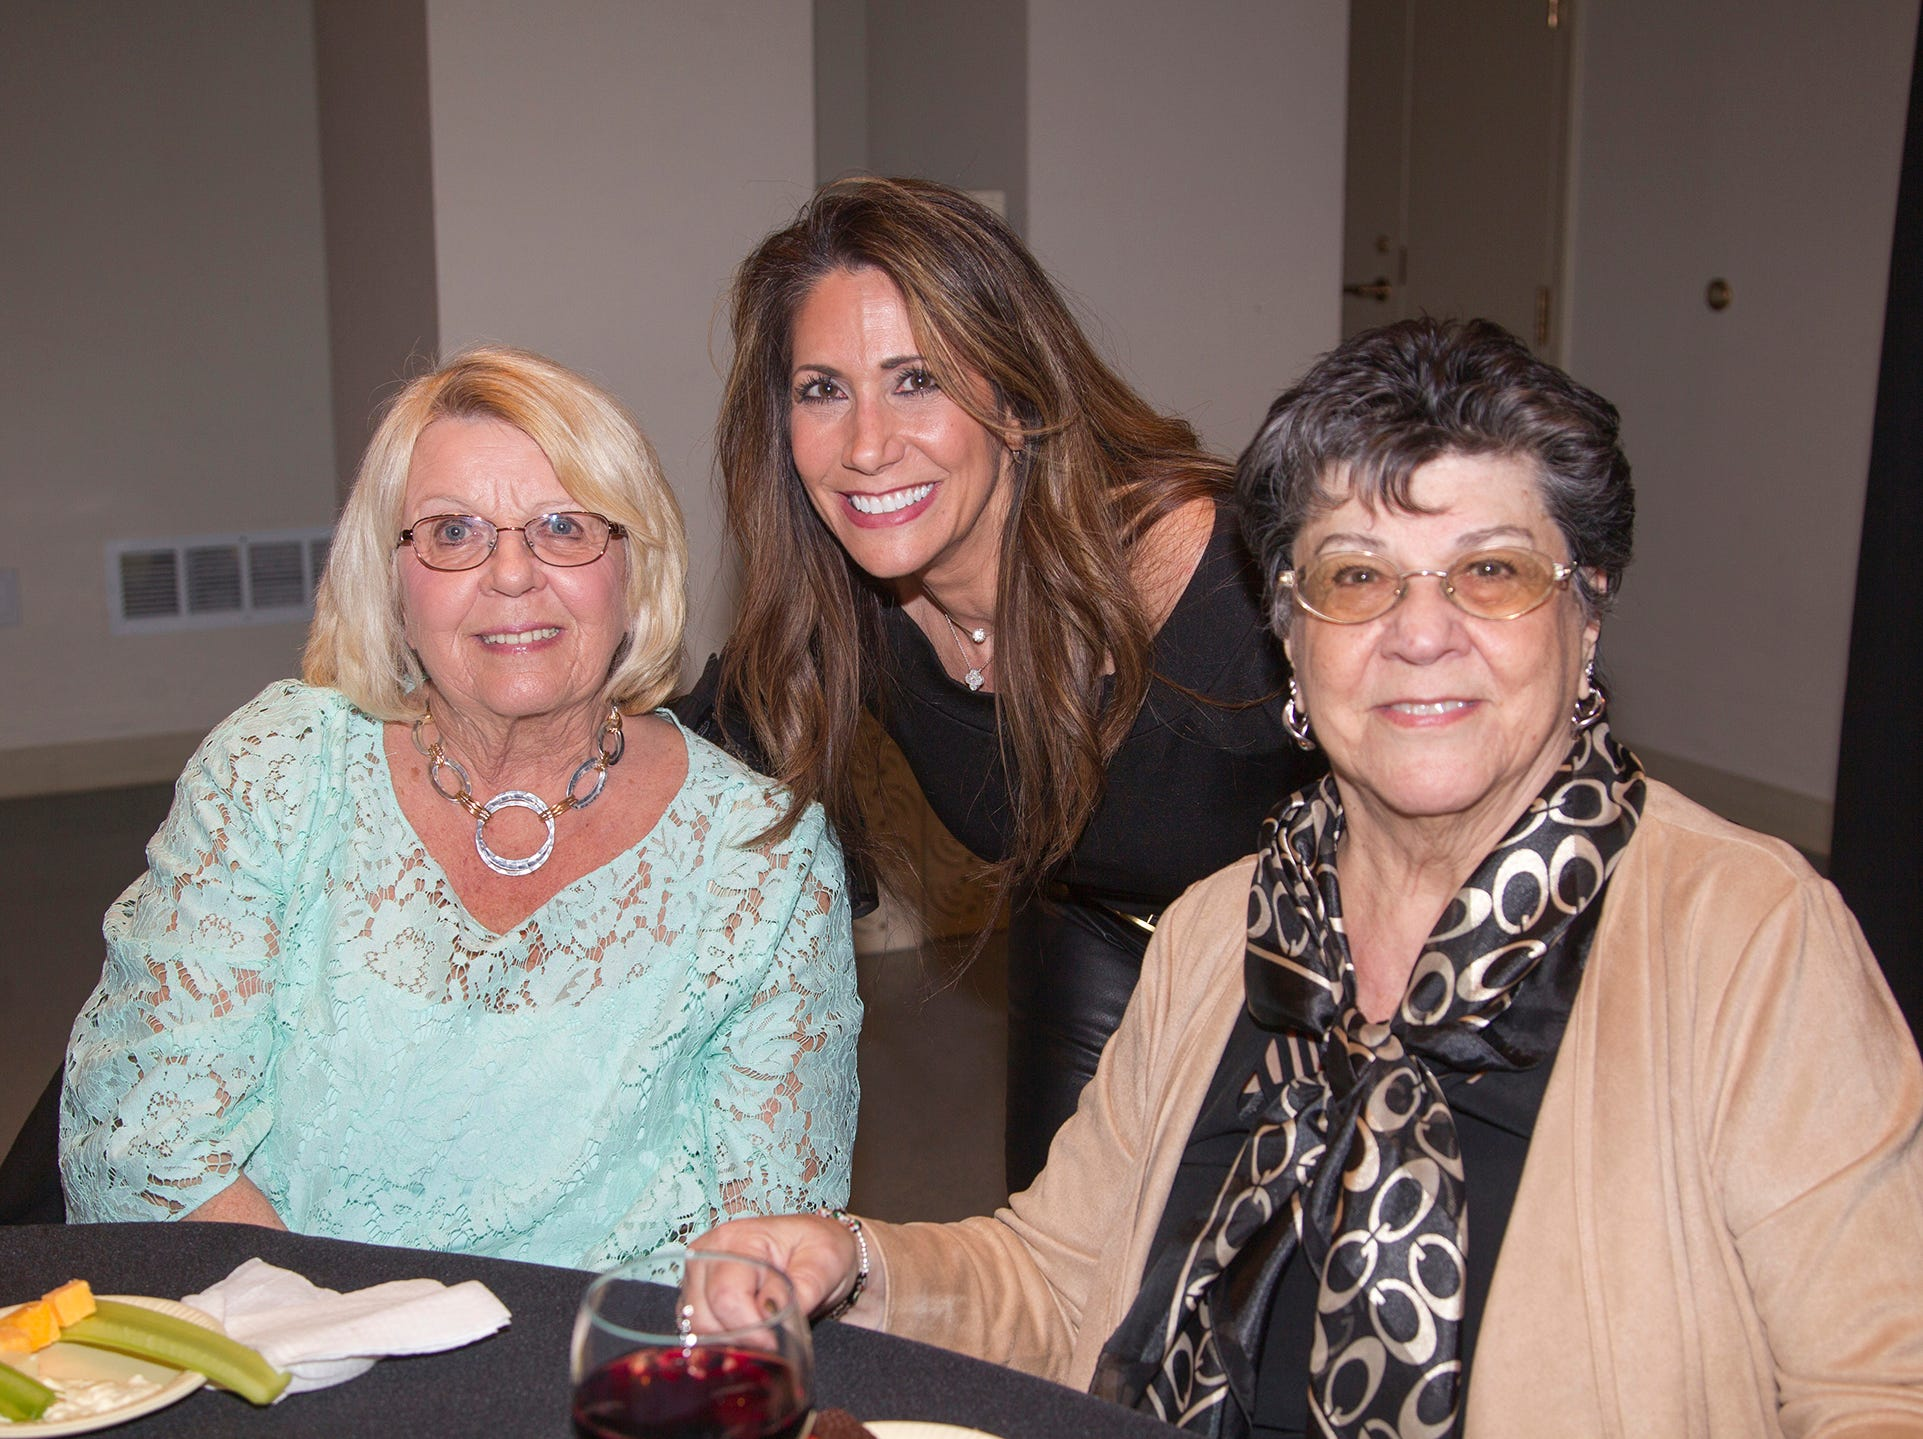 Marie Andreozzi, Barbara Blowdin, Lori Thinwel. Anthony Kearns benefit concert to benefit Julia's Butterfly Foundation at West Side Presbyterian Church in Ridgewood. 3/23/2019